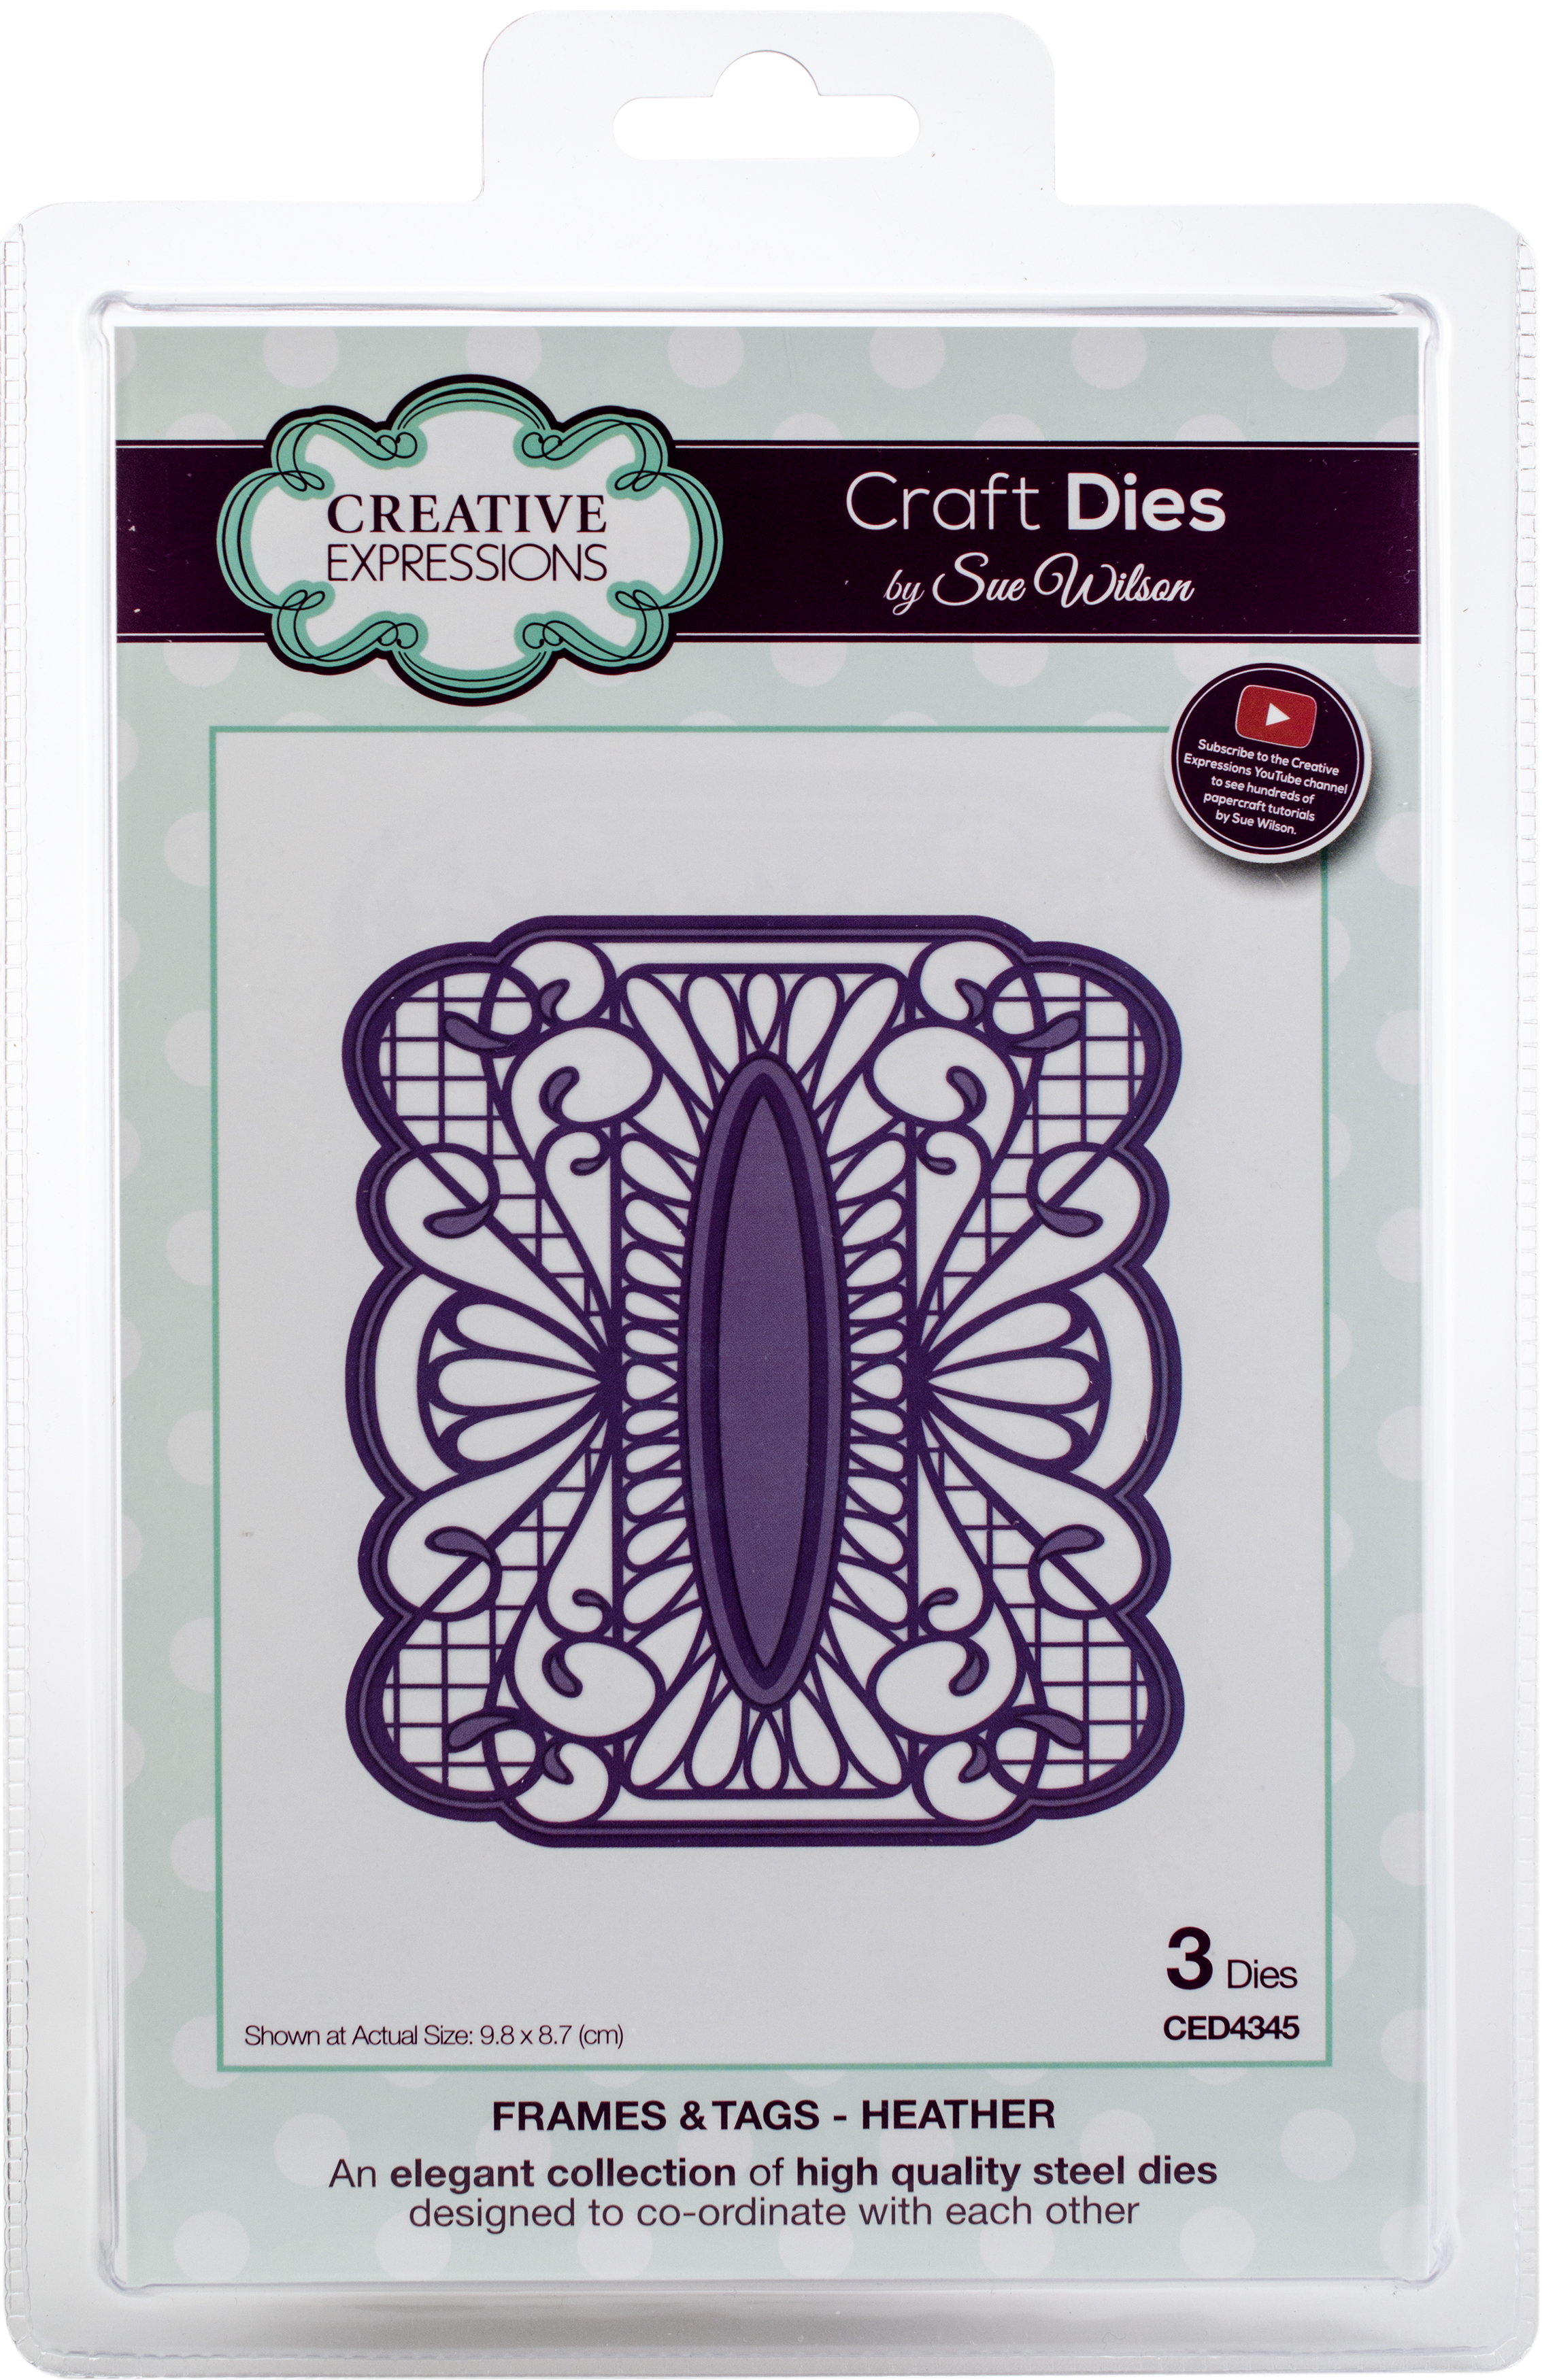 Creative Expressions Craft Dies By Sue Wilson-Frames & Tags-Heather